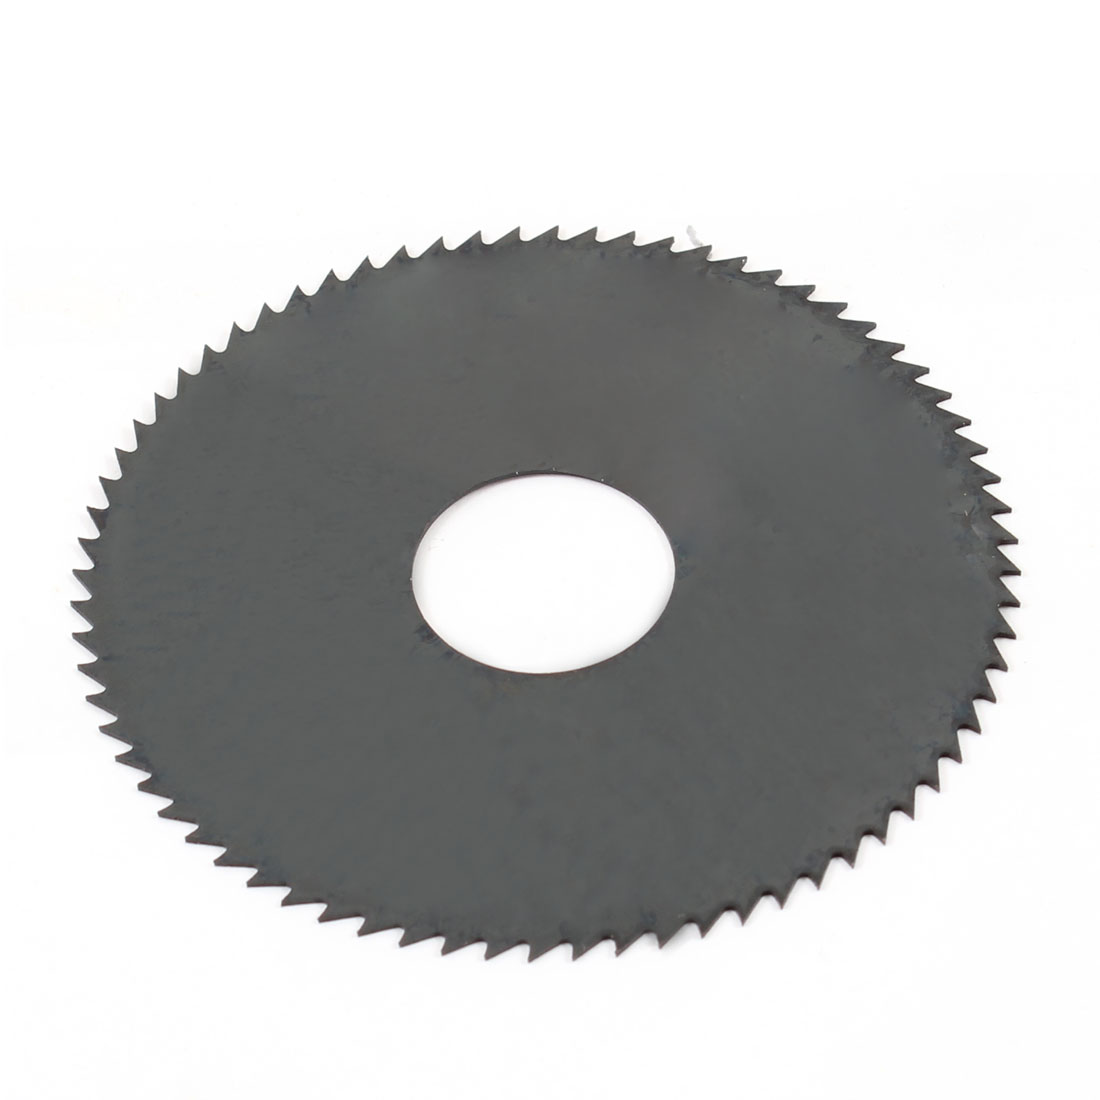 Hand Tool 80mm x 22mm x 0.6mm 72 Peg Teeth HSS Slitting Saw Blade